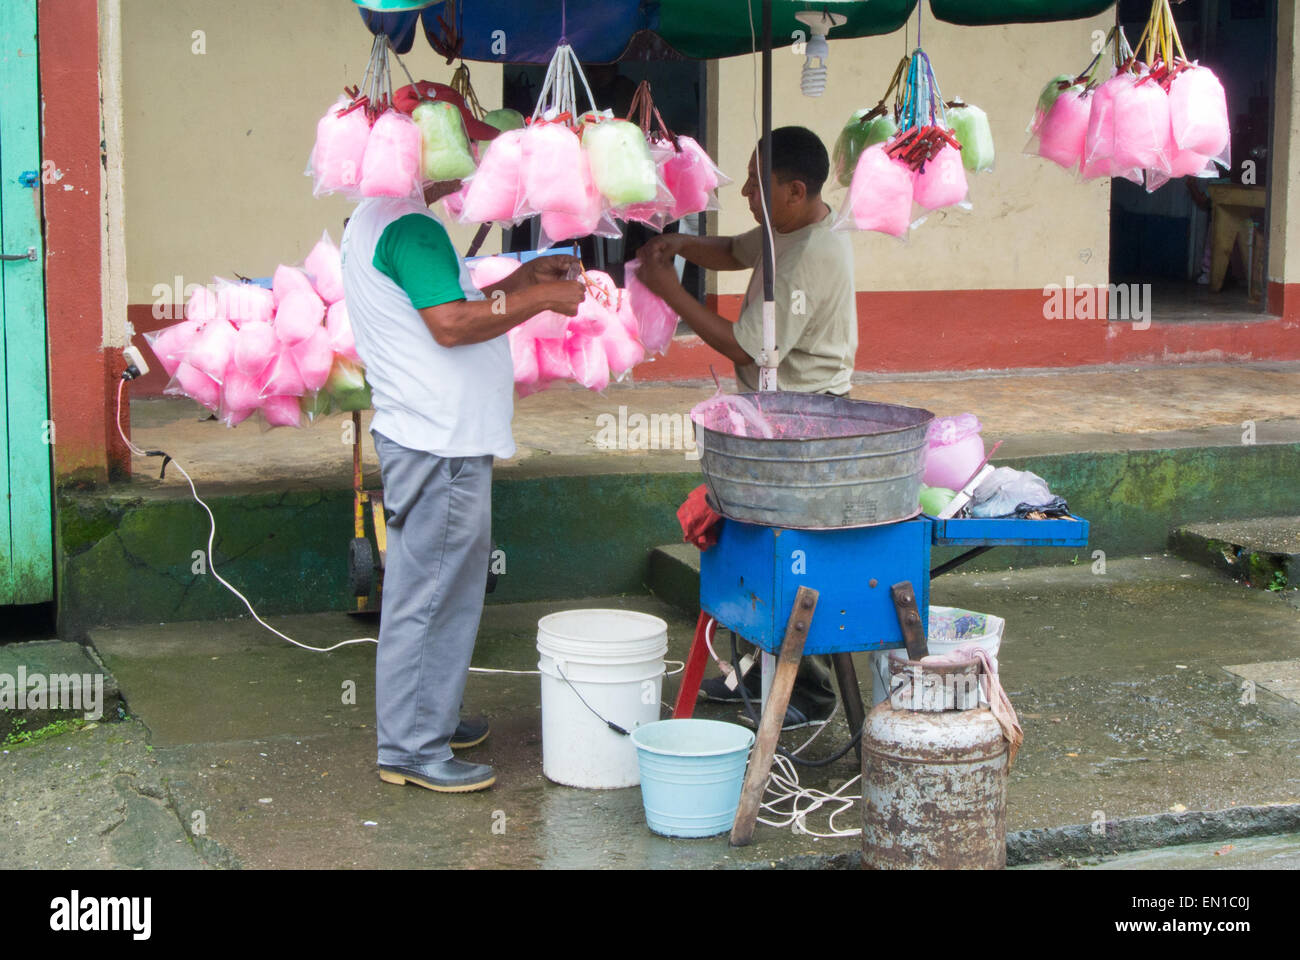 Spinning candyfloss in Livingston, Guatemala Stock Photo